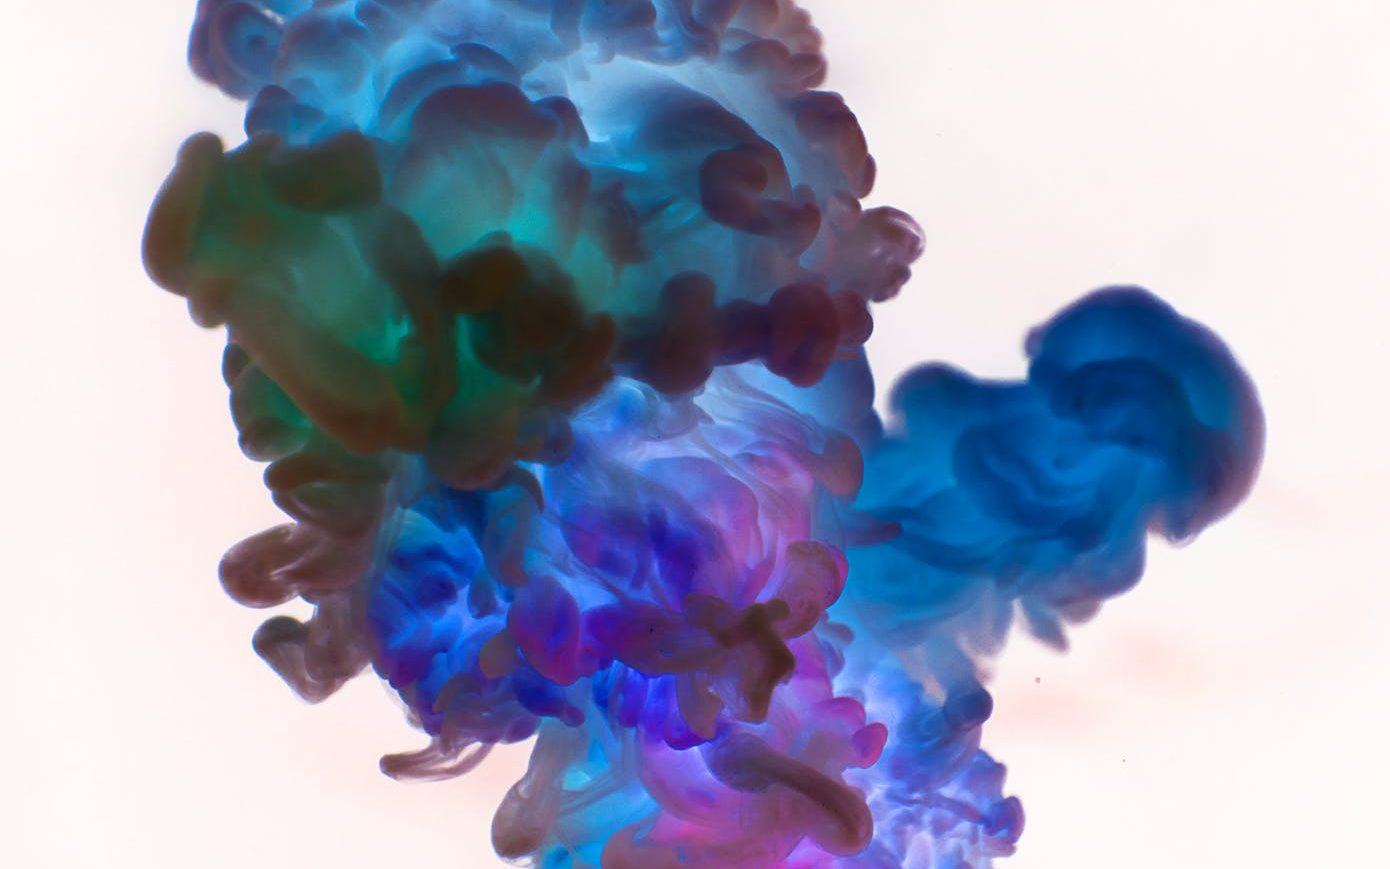 close up photography of blue and green smoke